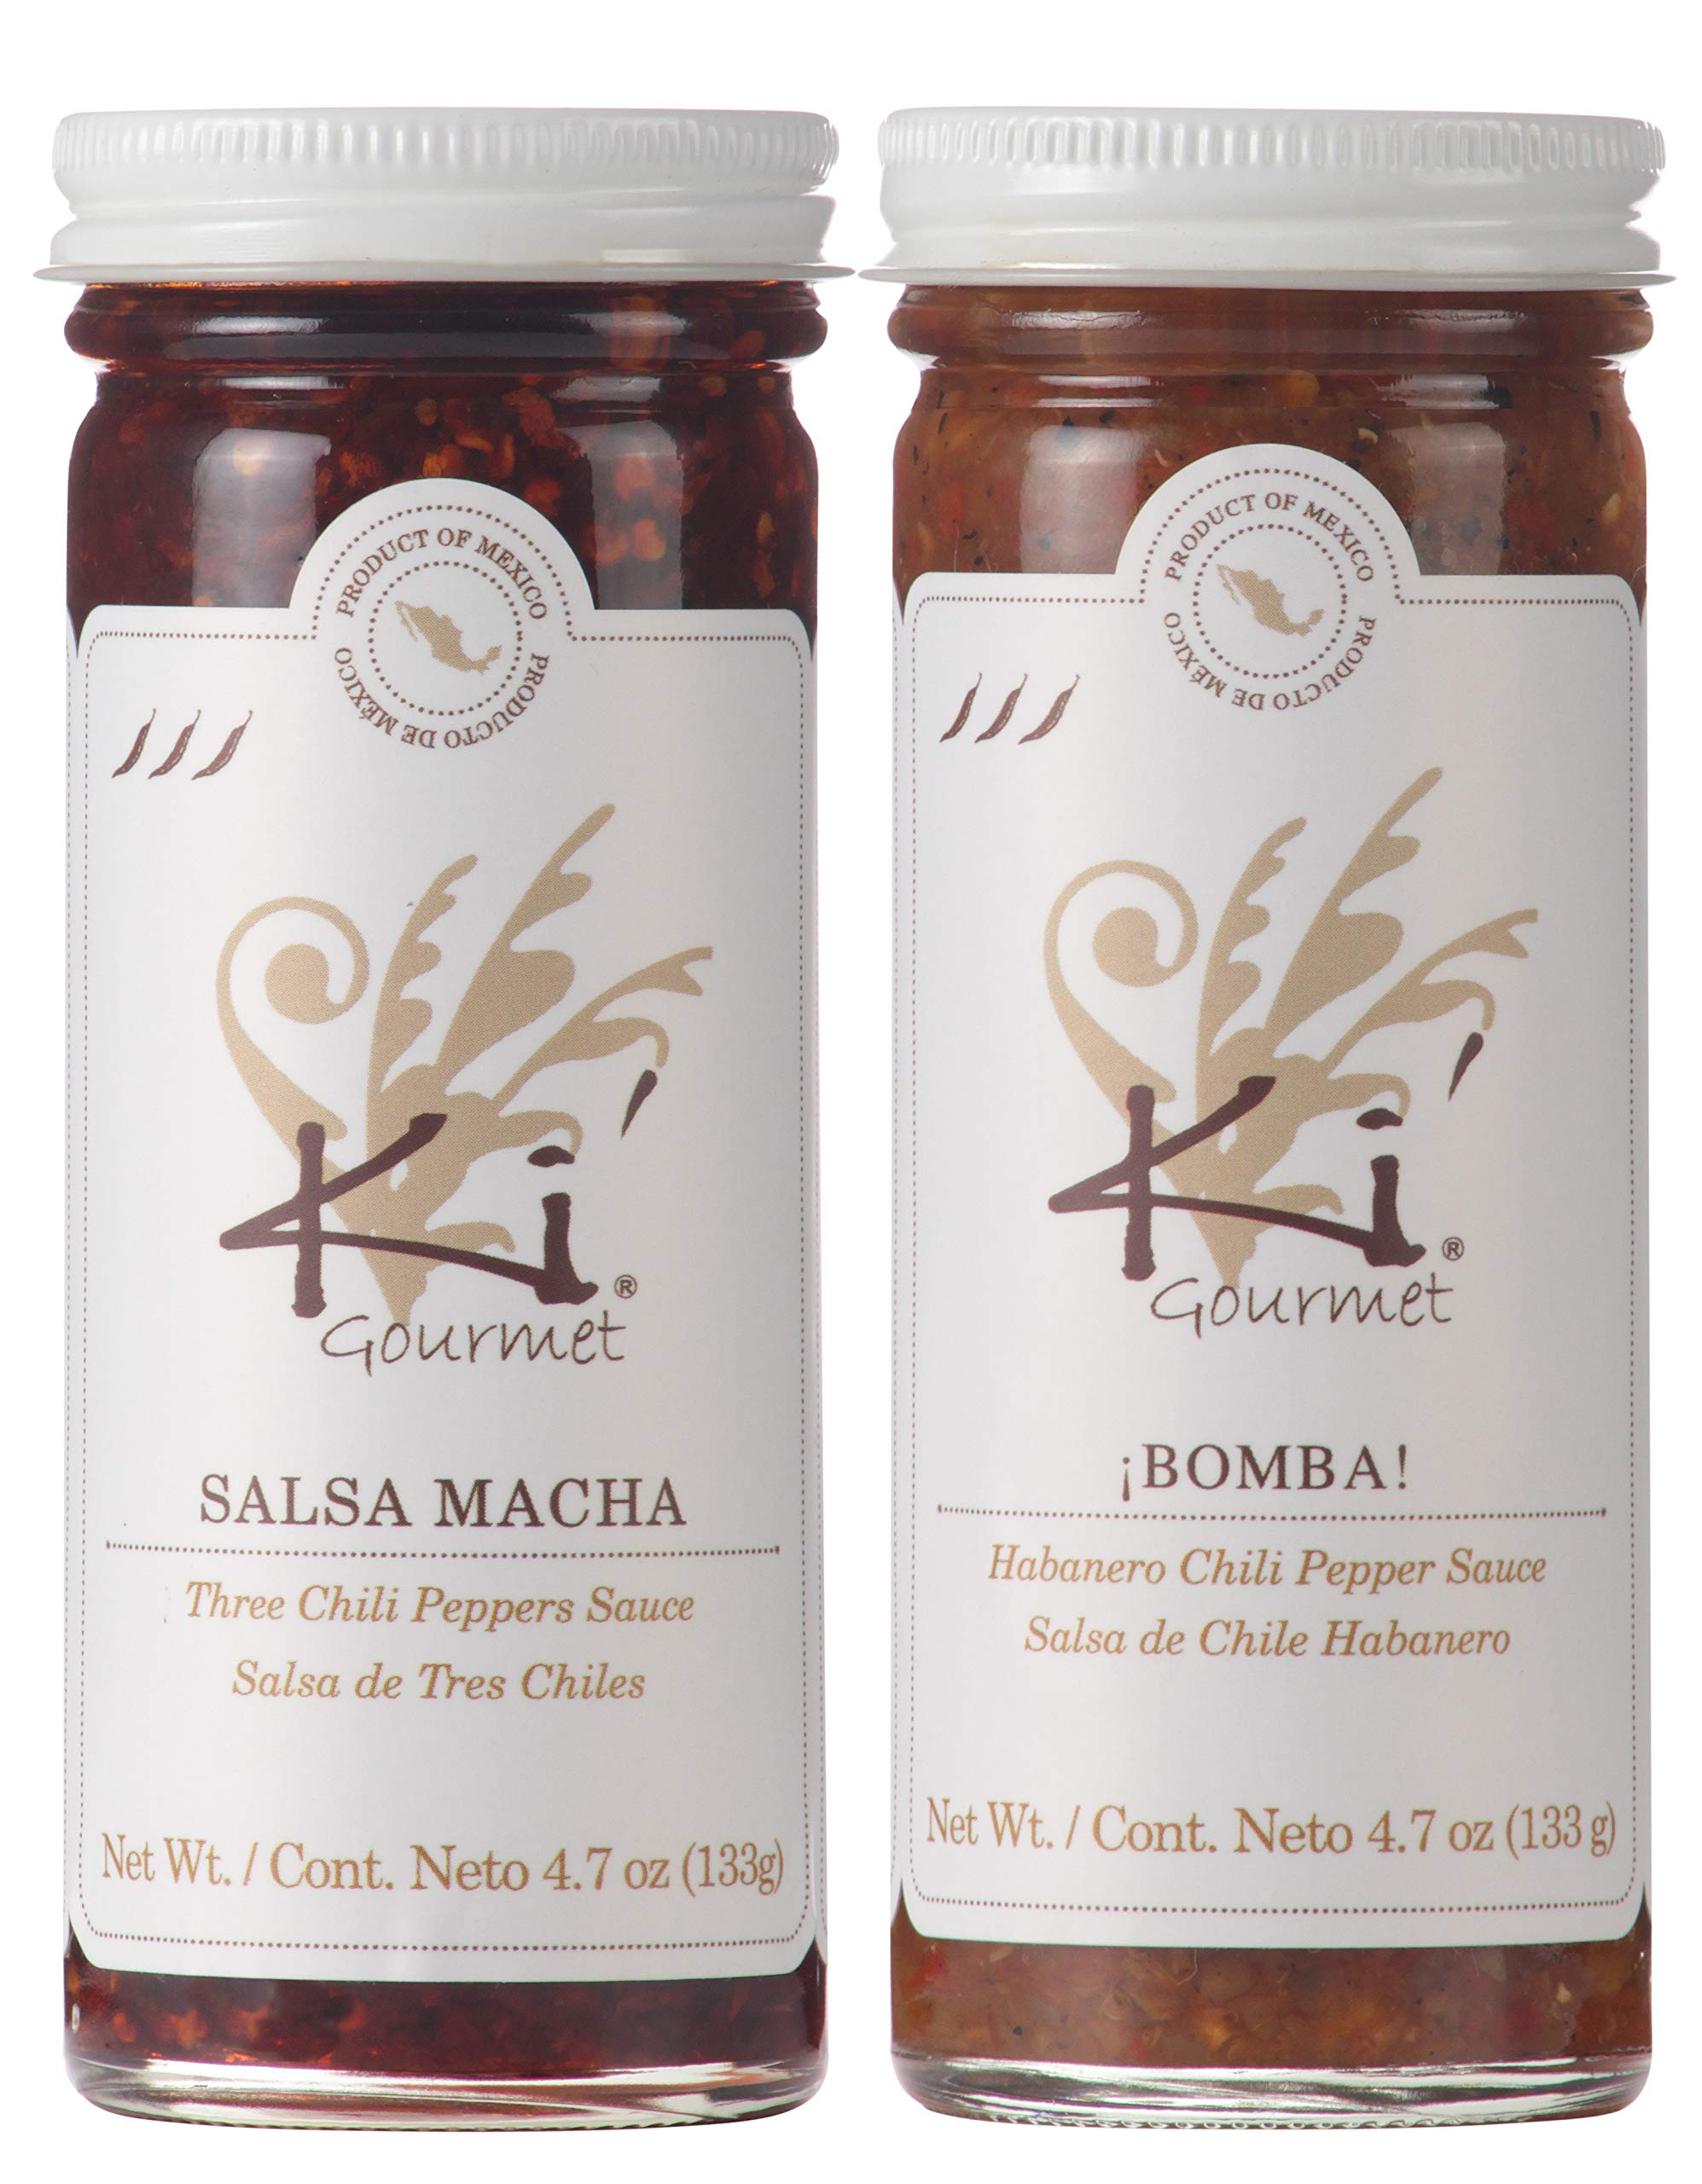 KI GOURMET MEXICAN SAUCES: MACHA SAUCE AND HABANERO SAUCES (4.7 oz. per sauce